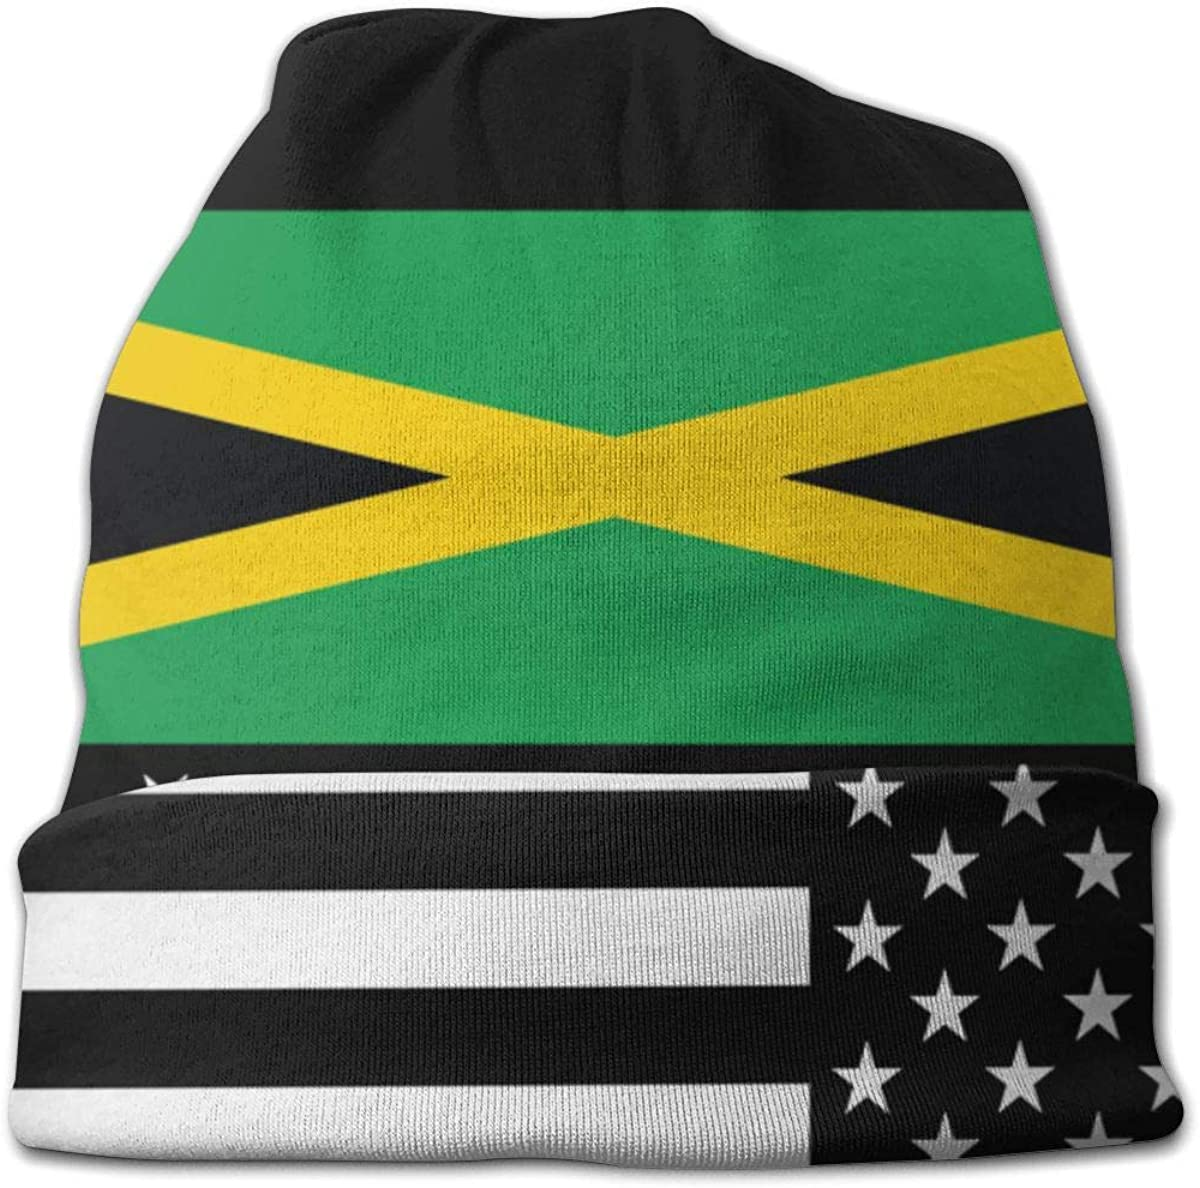 Lake-OD Jamaican USA Flag Thin Baggy Slouchy Knit Beanie Hat Hip-hop Skull Cap for Mens and Womens